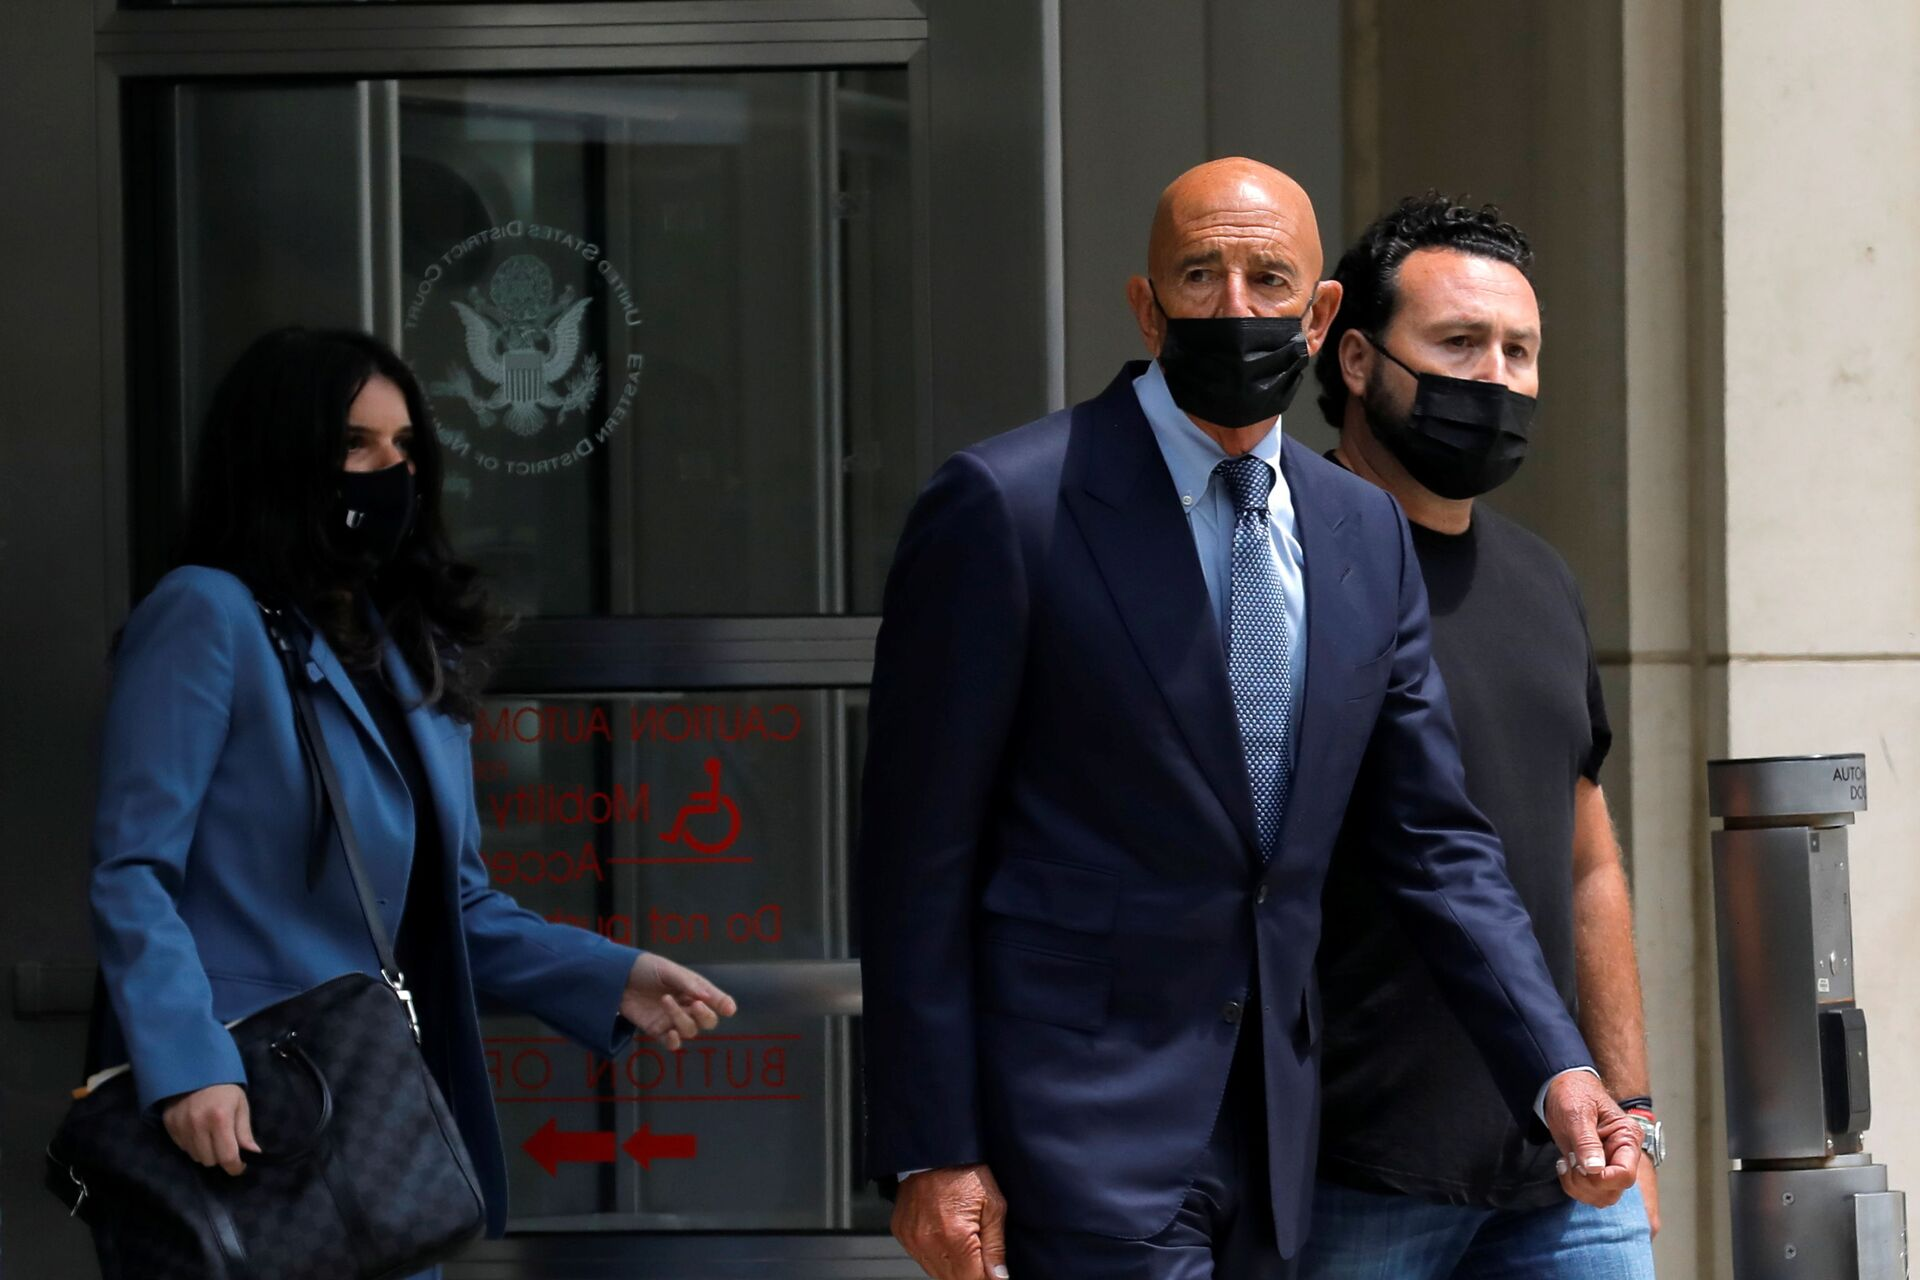 Thomas Barrack, a billionaire friend of Donald Trump who chaired the former president's inaugural fund, exits following his arraignment hearing at the Brooklyn Federal Courthouse in Brooklyn, New York, U.S., July 26, 2021. - Sputnik International, 1920, 07.09.2021